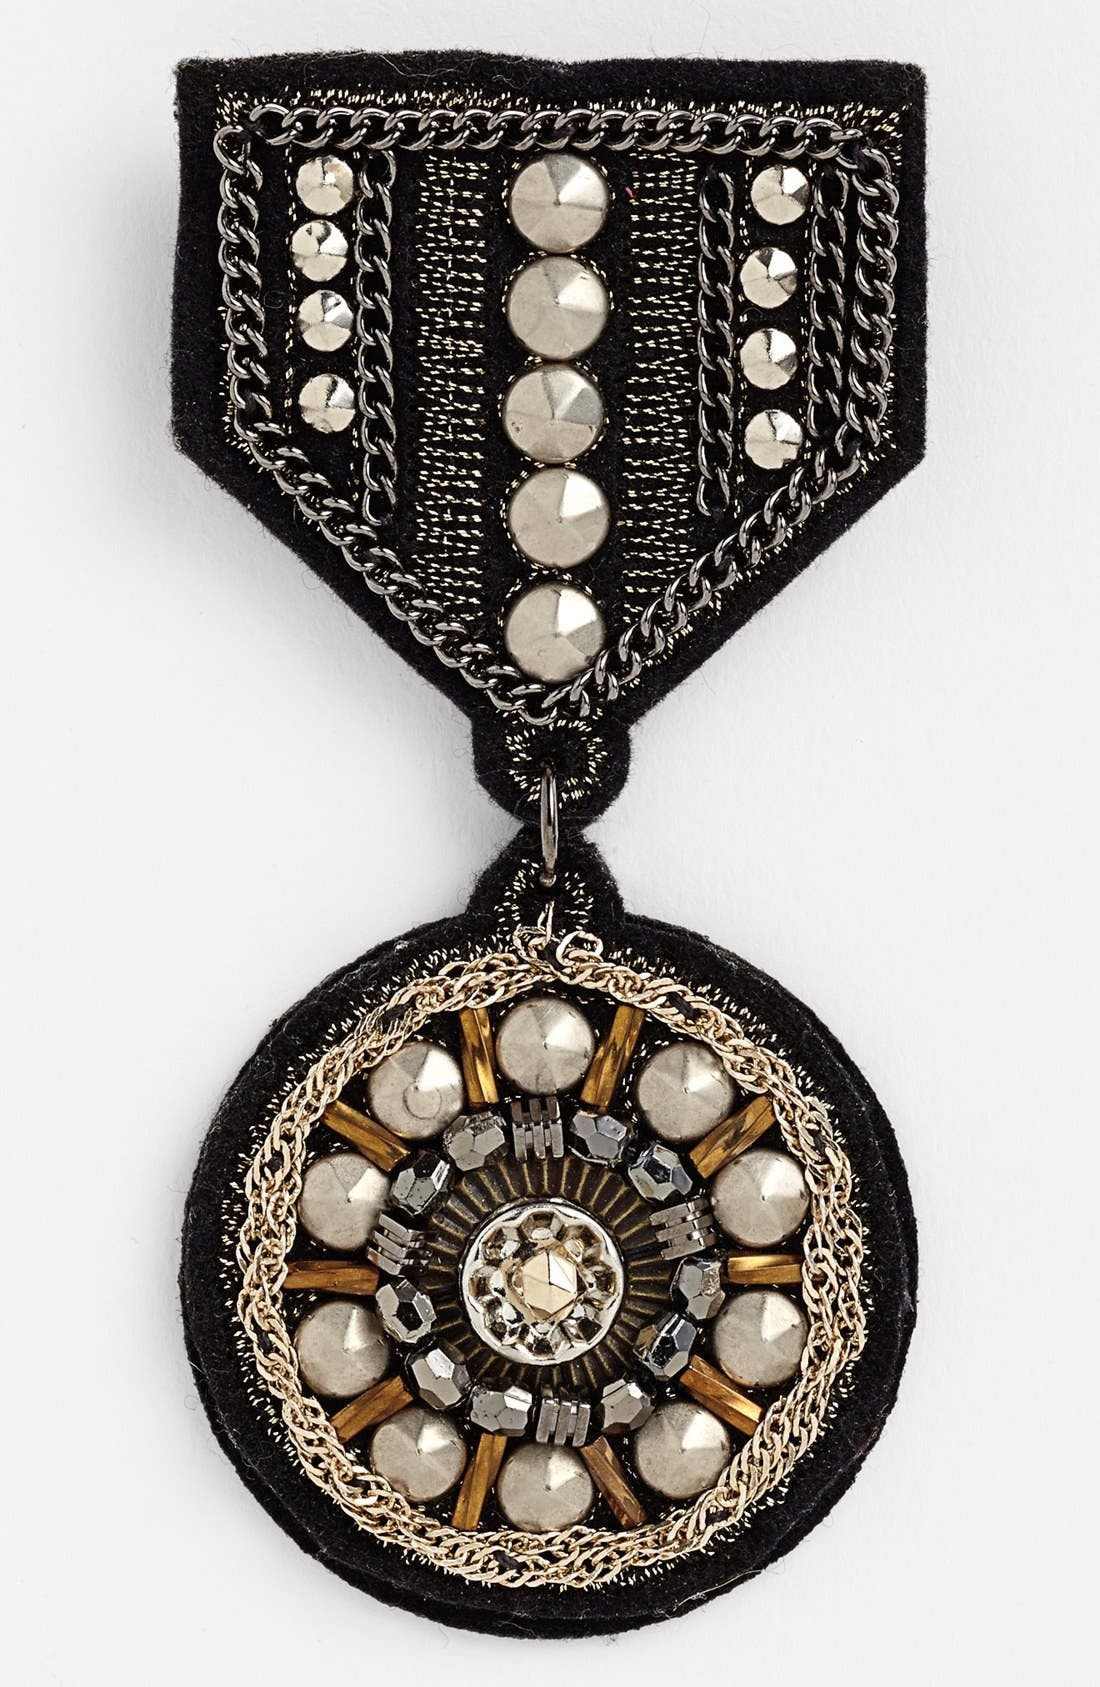 Alternate Image 1 Selected - Cara 'Special Military' Embellished Pin